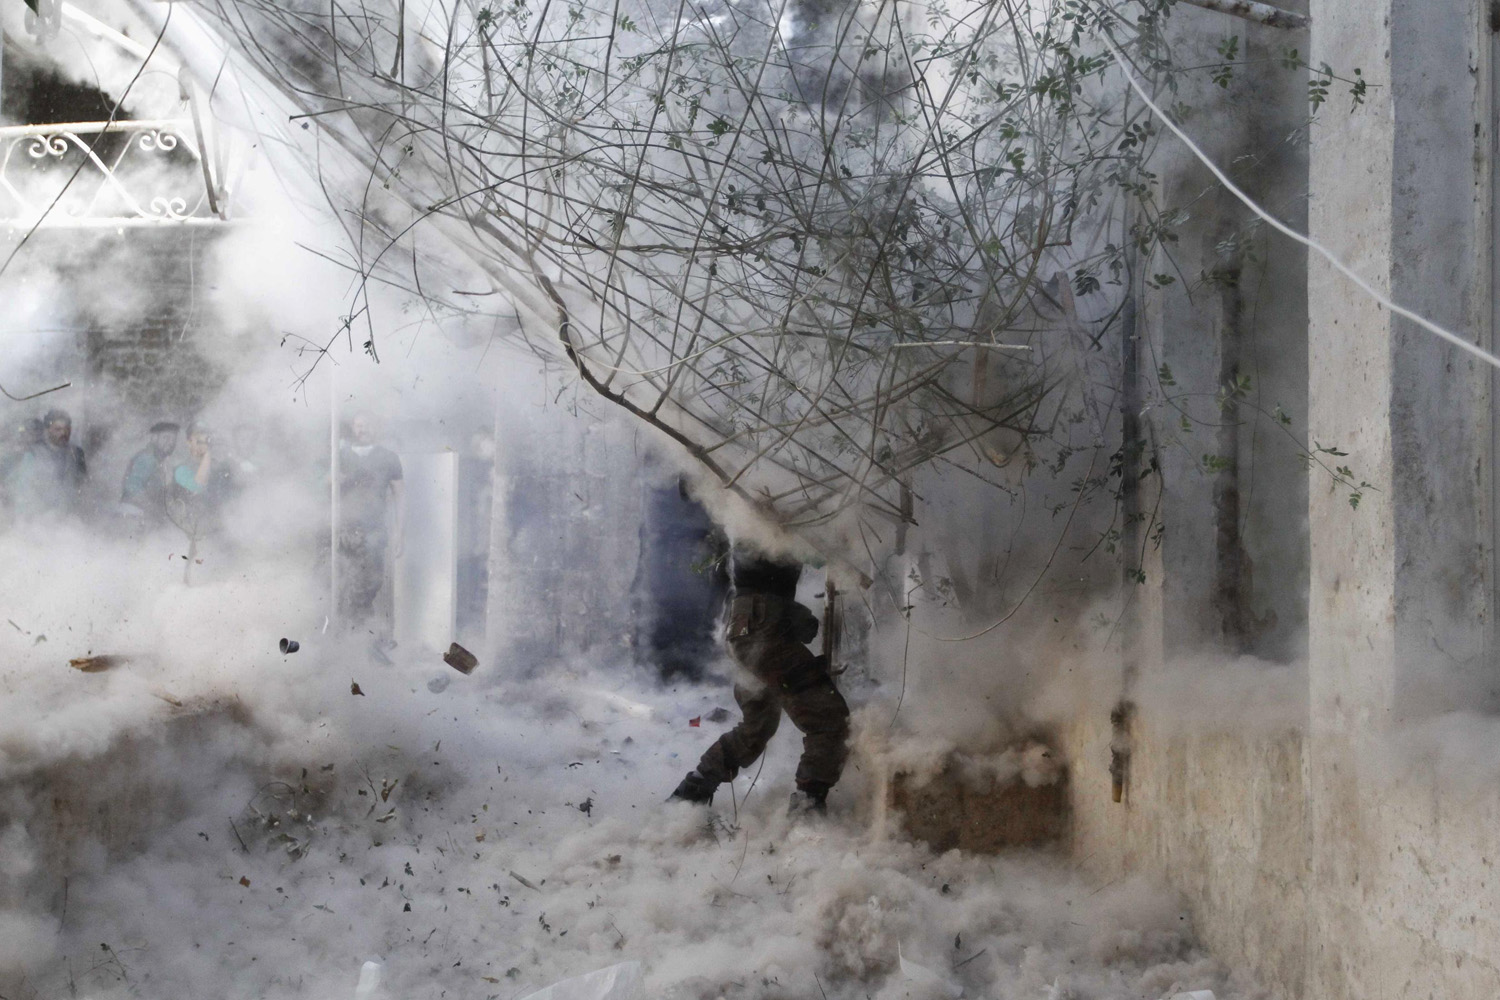 Apr. 27, 2014.  A Free Syrian Army fighter fires a rocket-propelled grenade (RPG) towards forces loyal to Syria's President Bashar al-Assad, during heavy clashes in the old city of Aleppo.